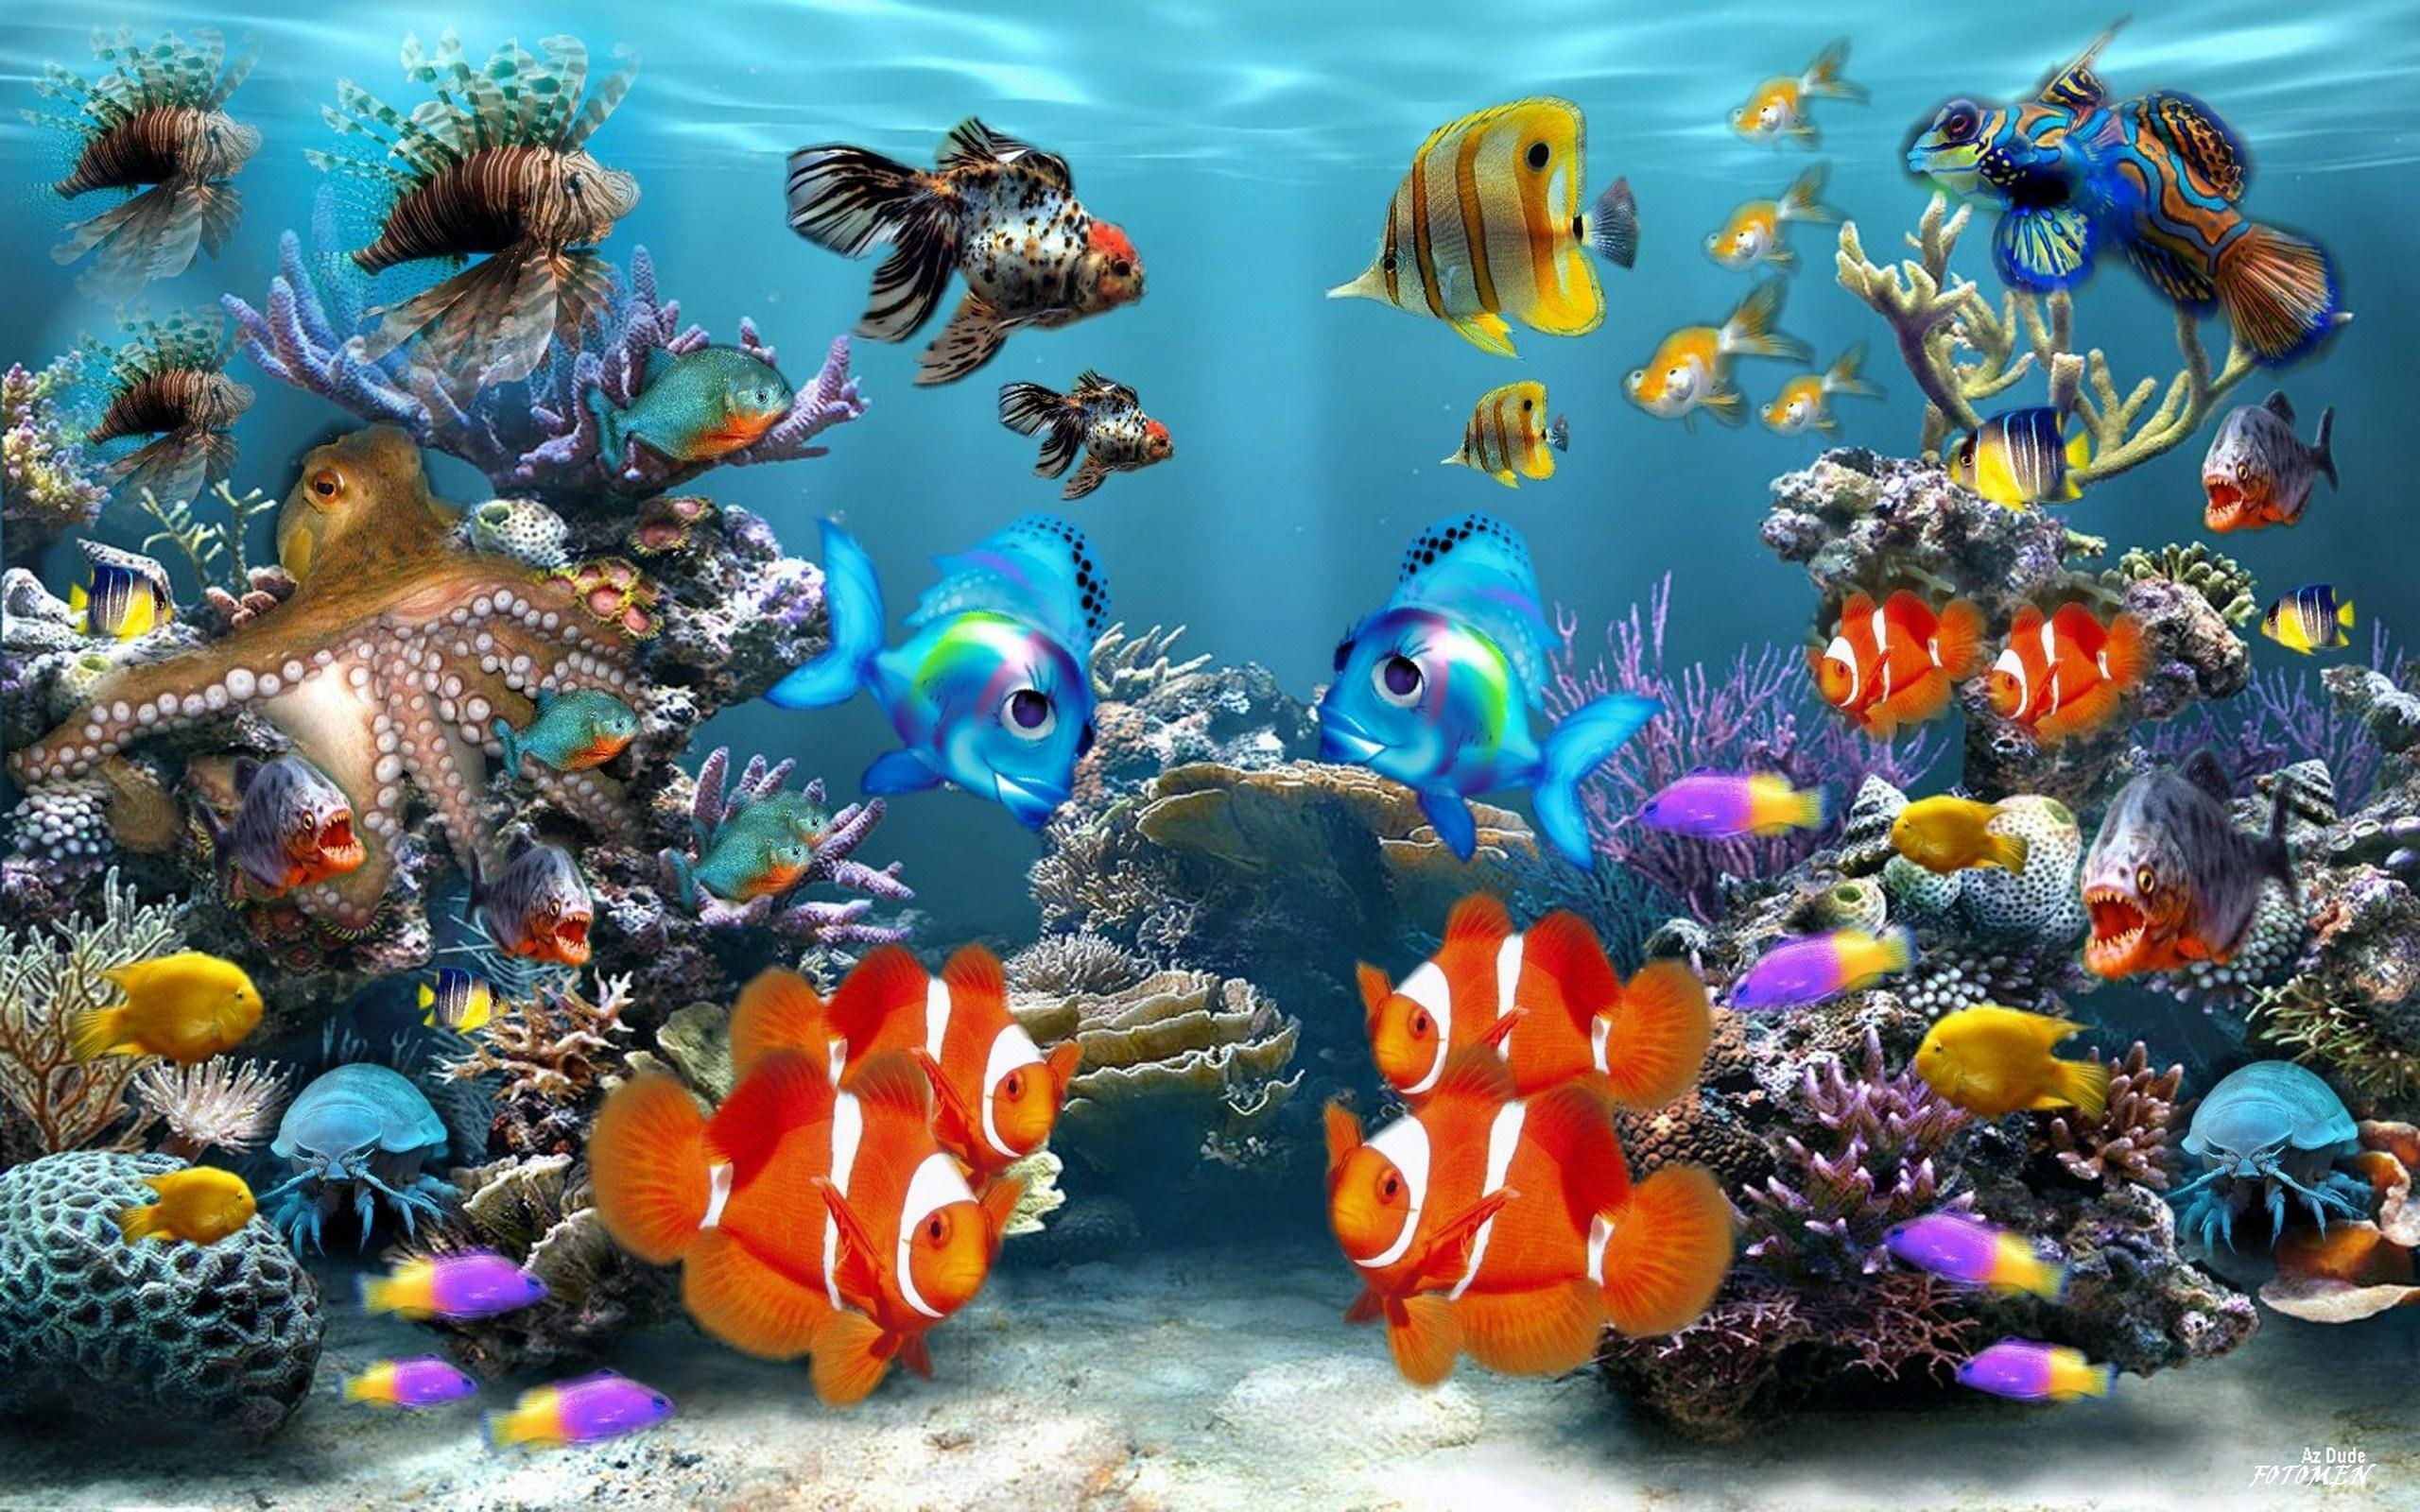 Fish Wallpaper · Fish Wallpaper · Fish Wallpaper ...